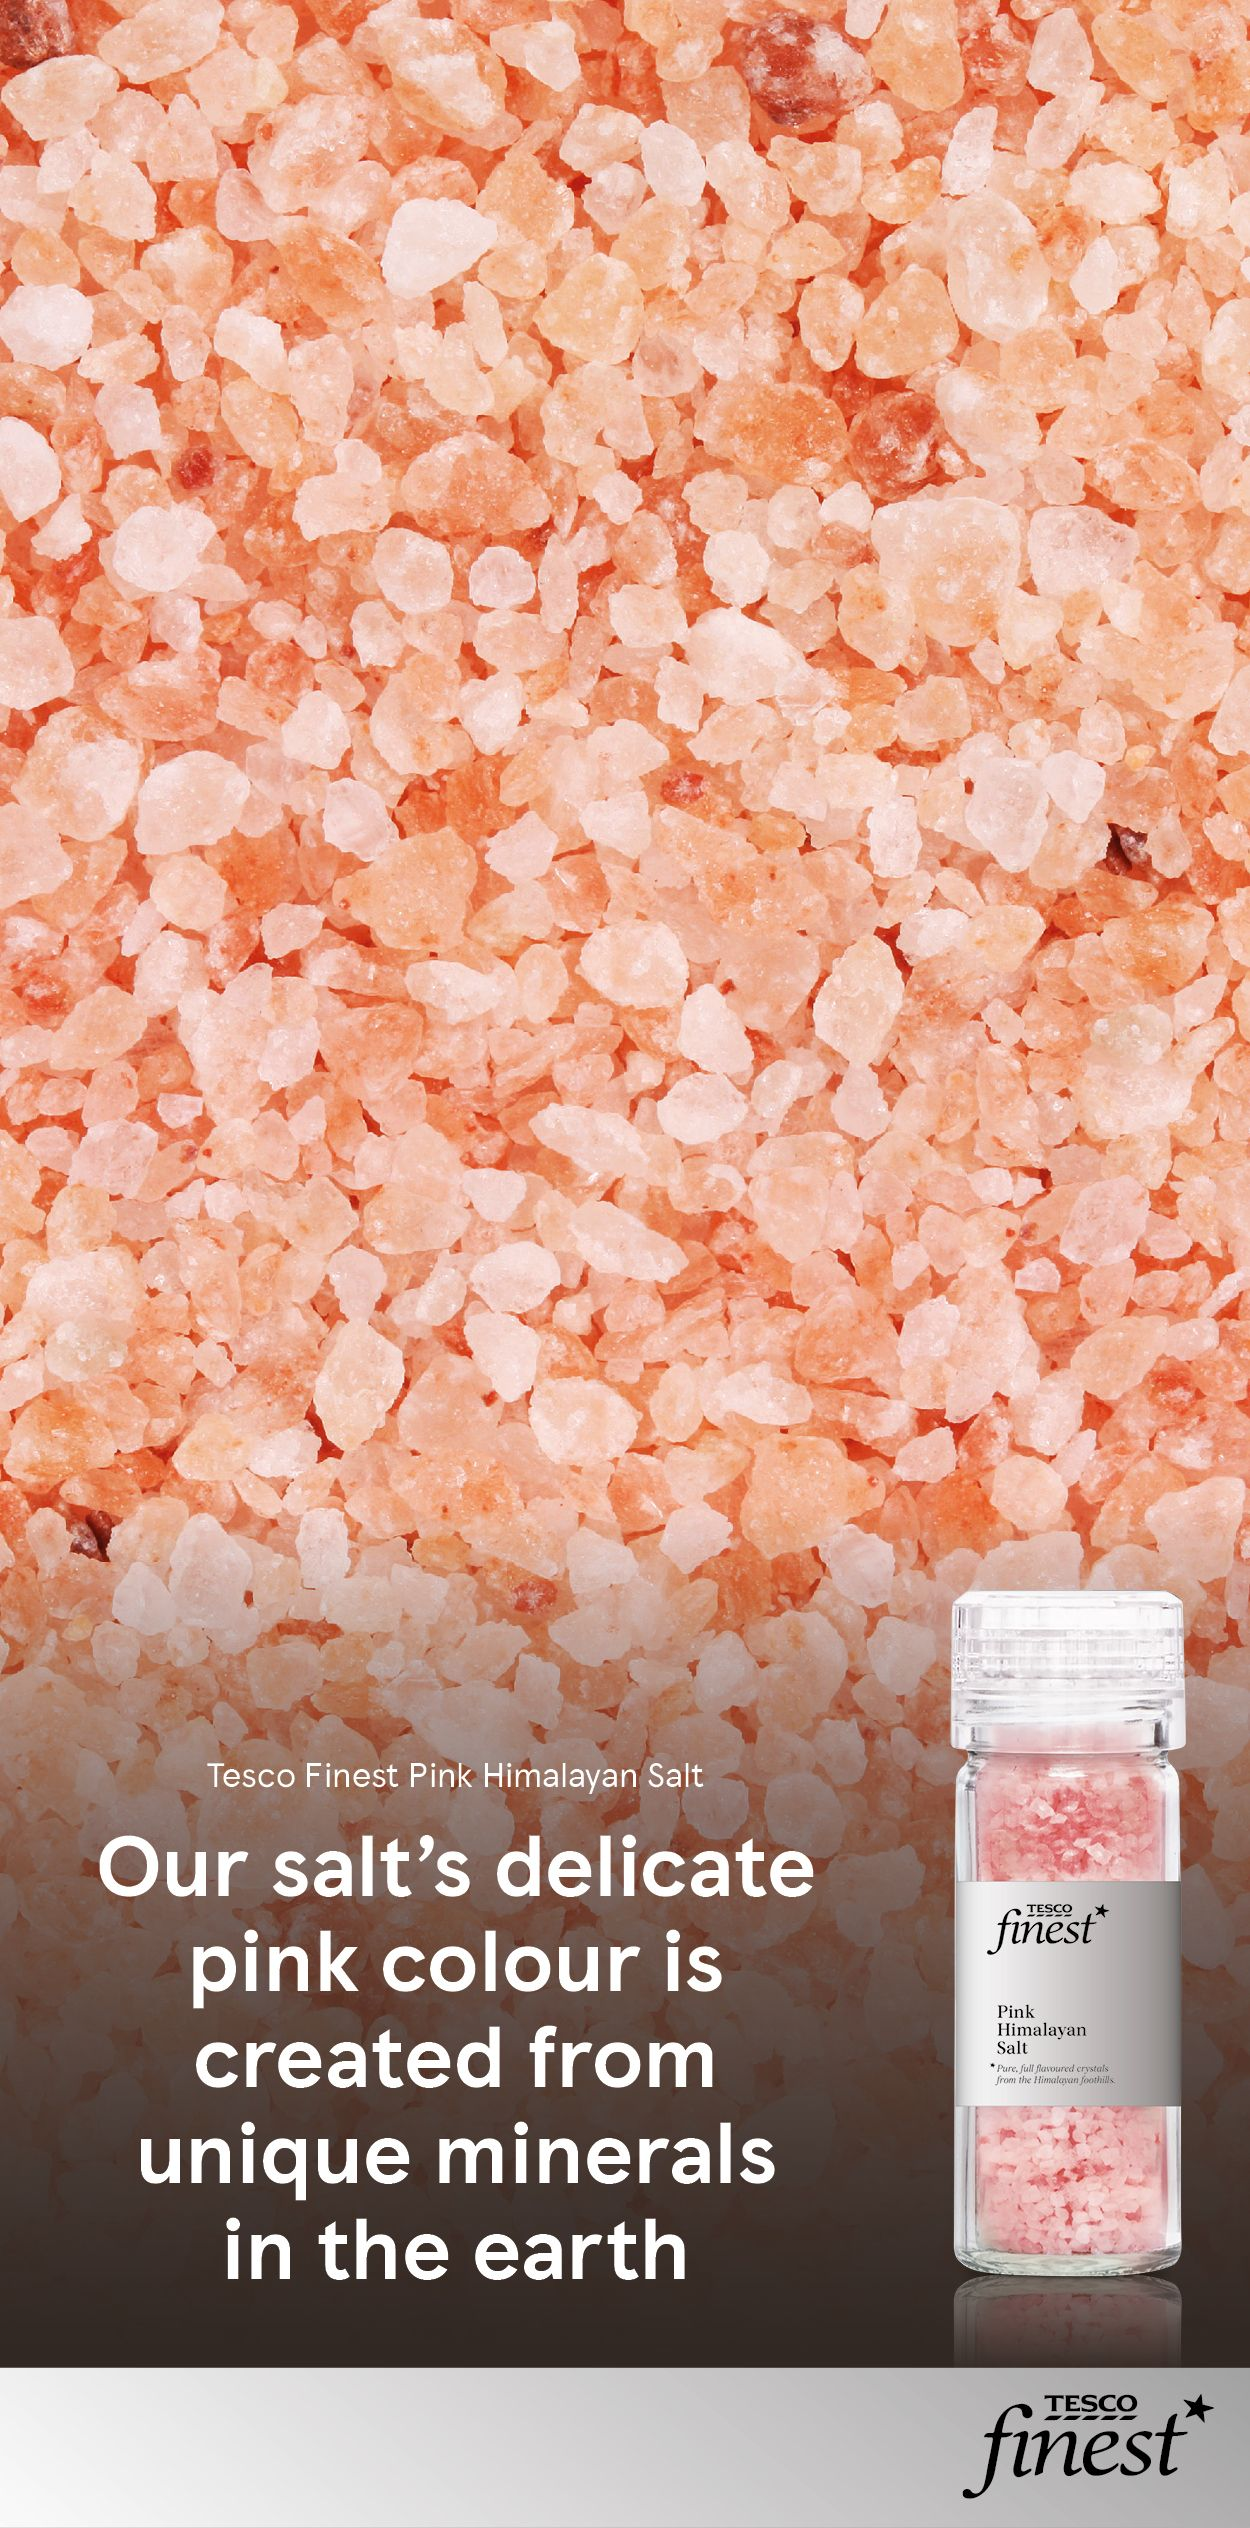 The pink colour of our Tesco Finest Himilayan salt is